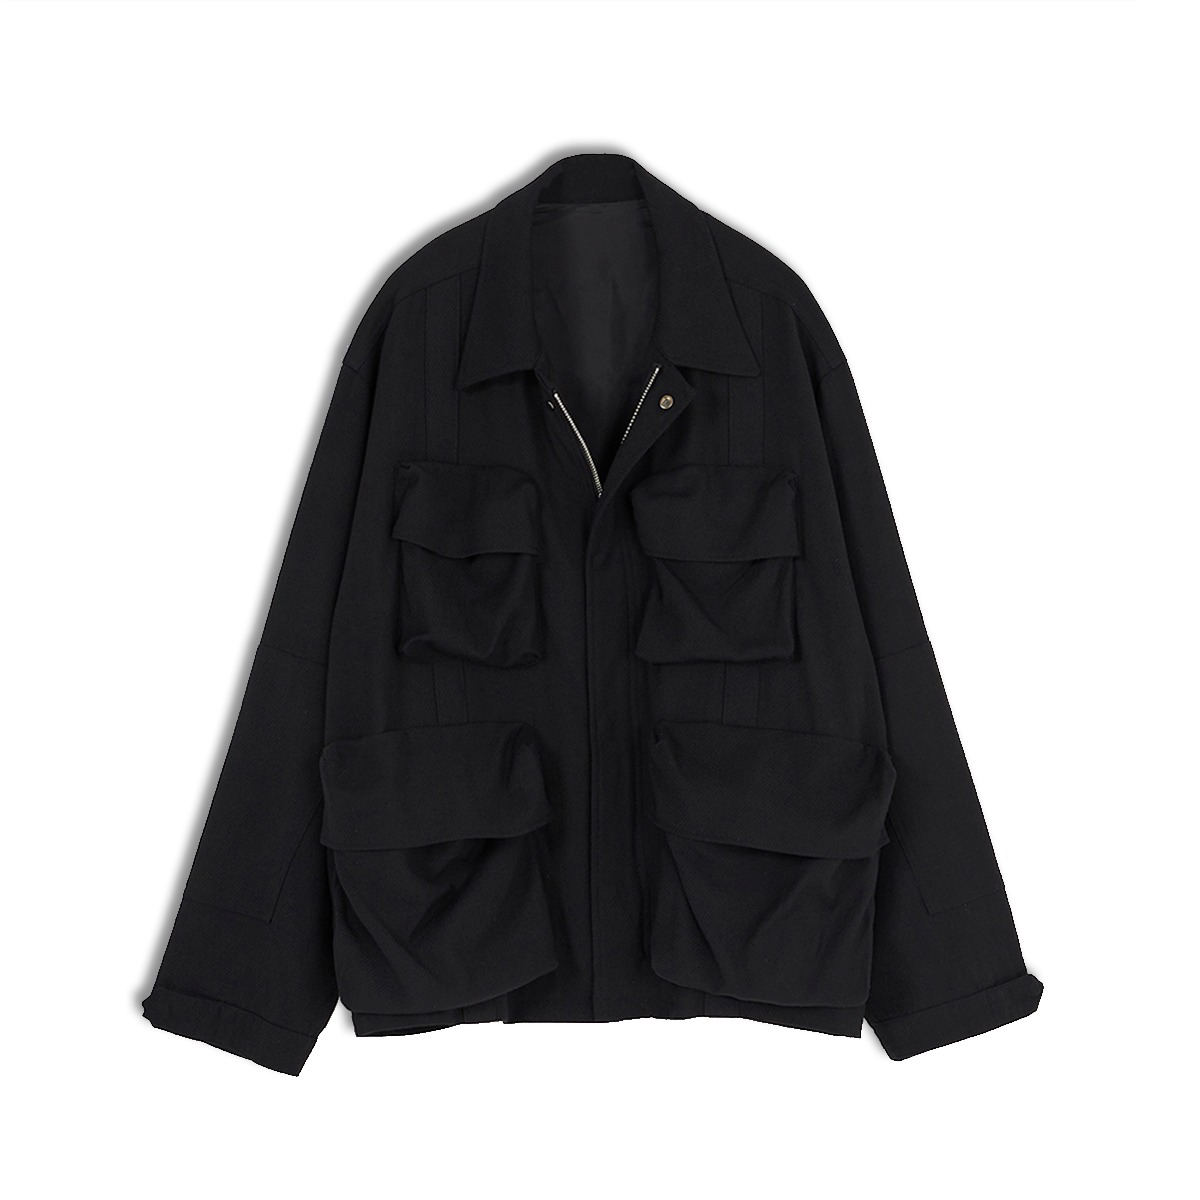 [YOUTH] M70 FILED JACKET 'BLACK'